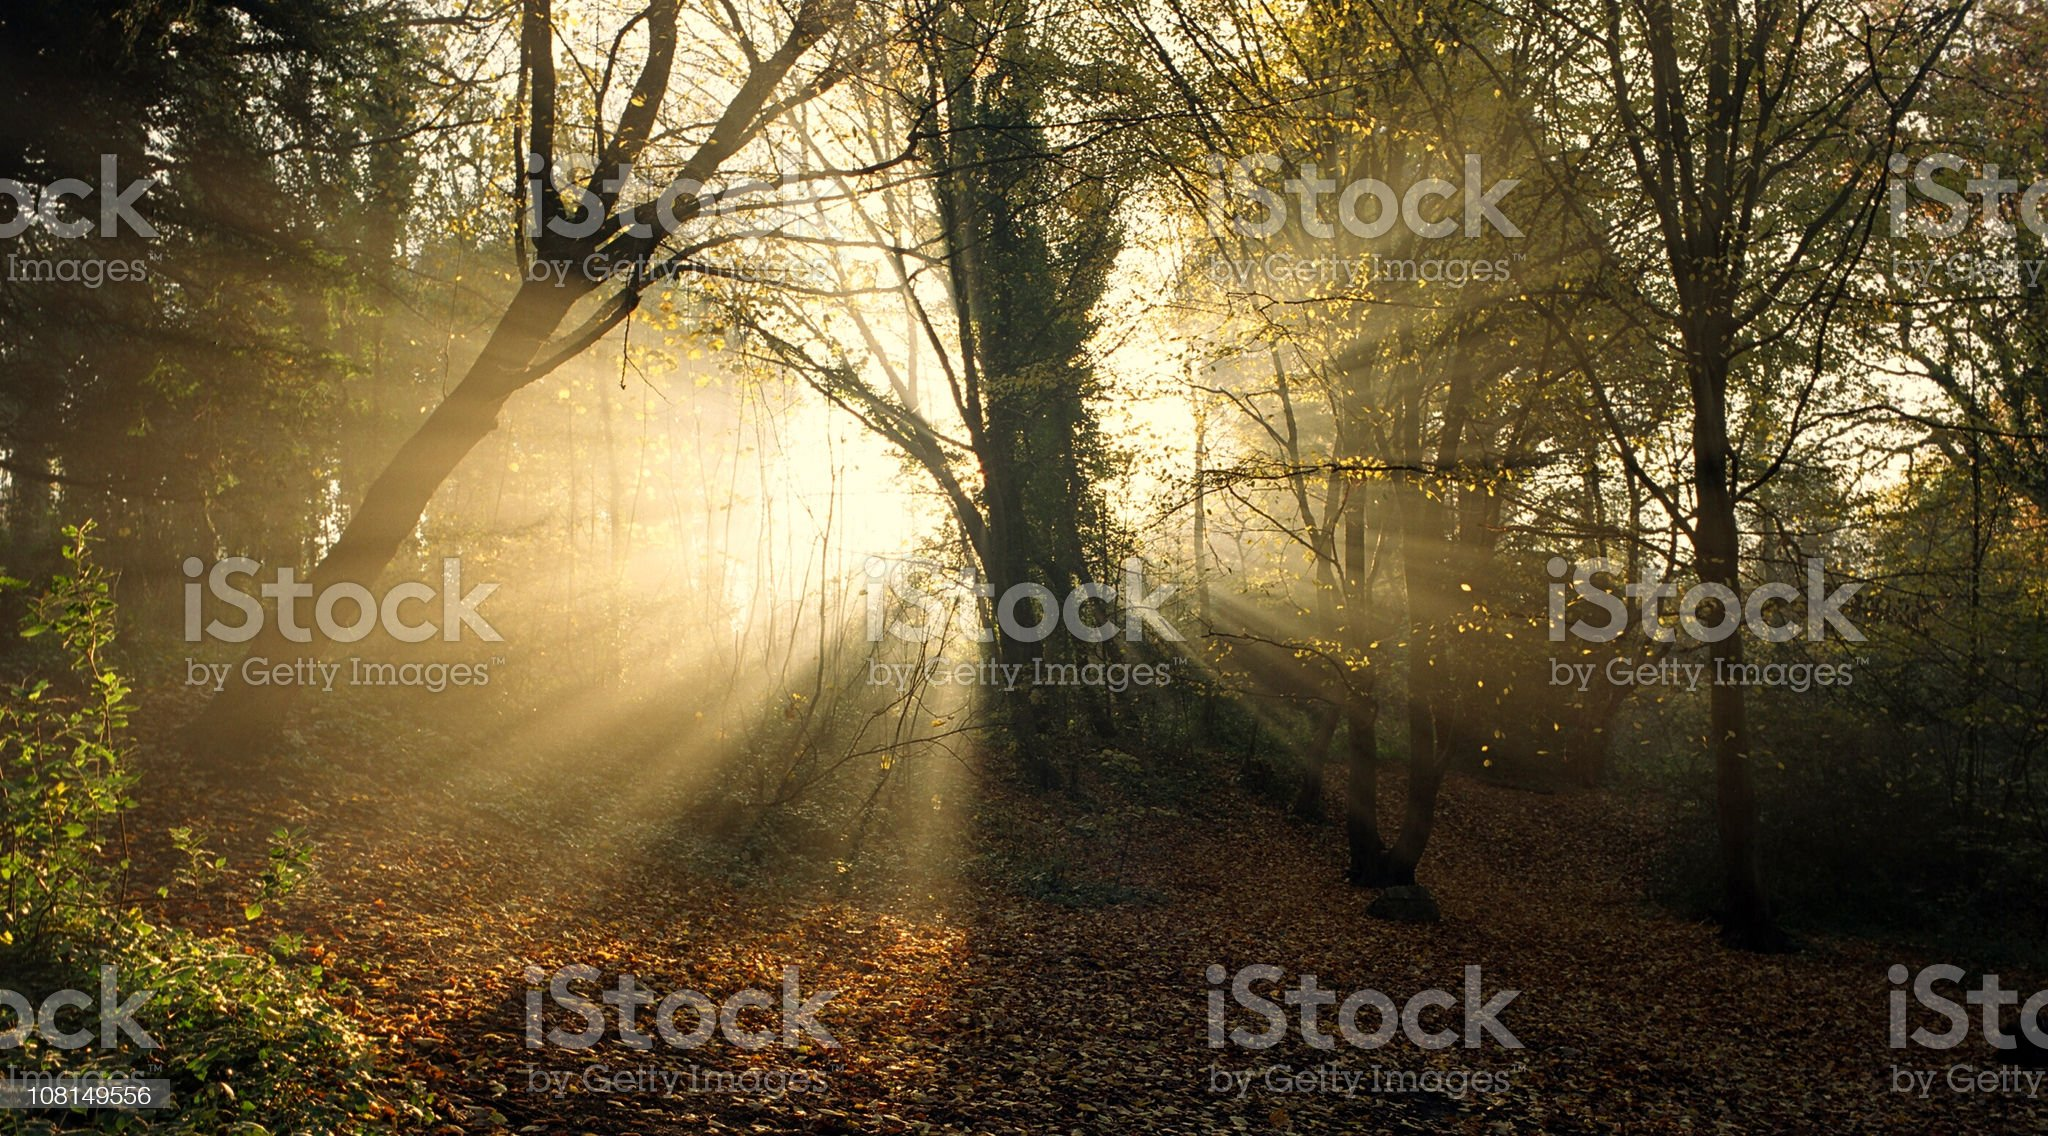 Sun Shining Through Tree in Forest royalty-free stock photo